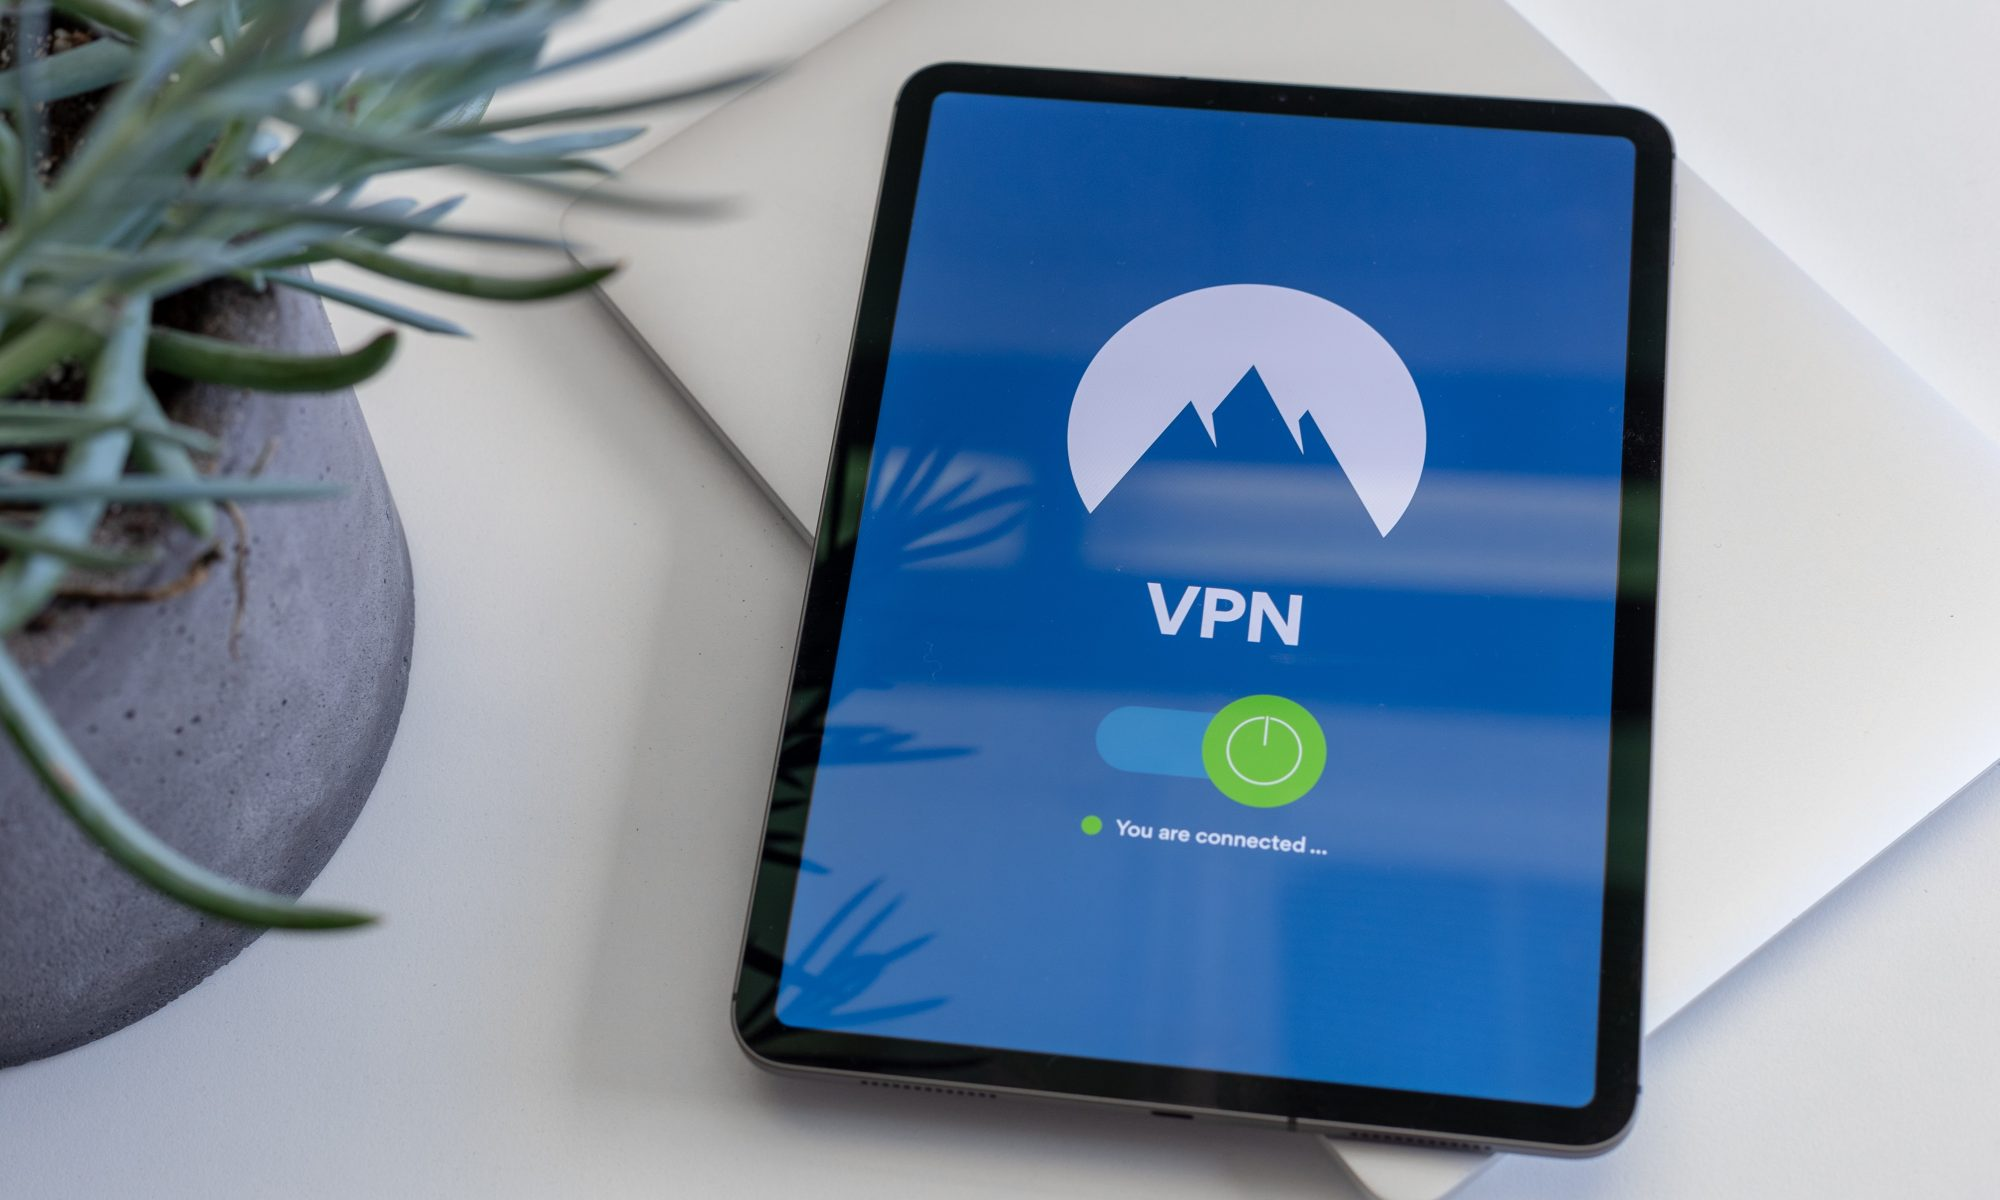 Photo by Petter Lagson on Unsplash Using a VPN is arguably one of the best ways to stay safe on Public Wi-Fi